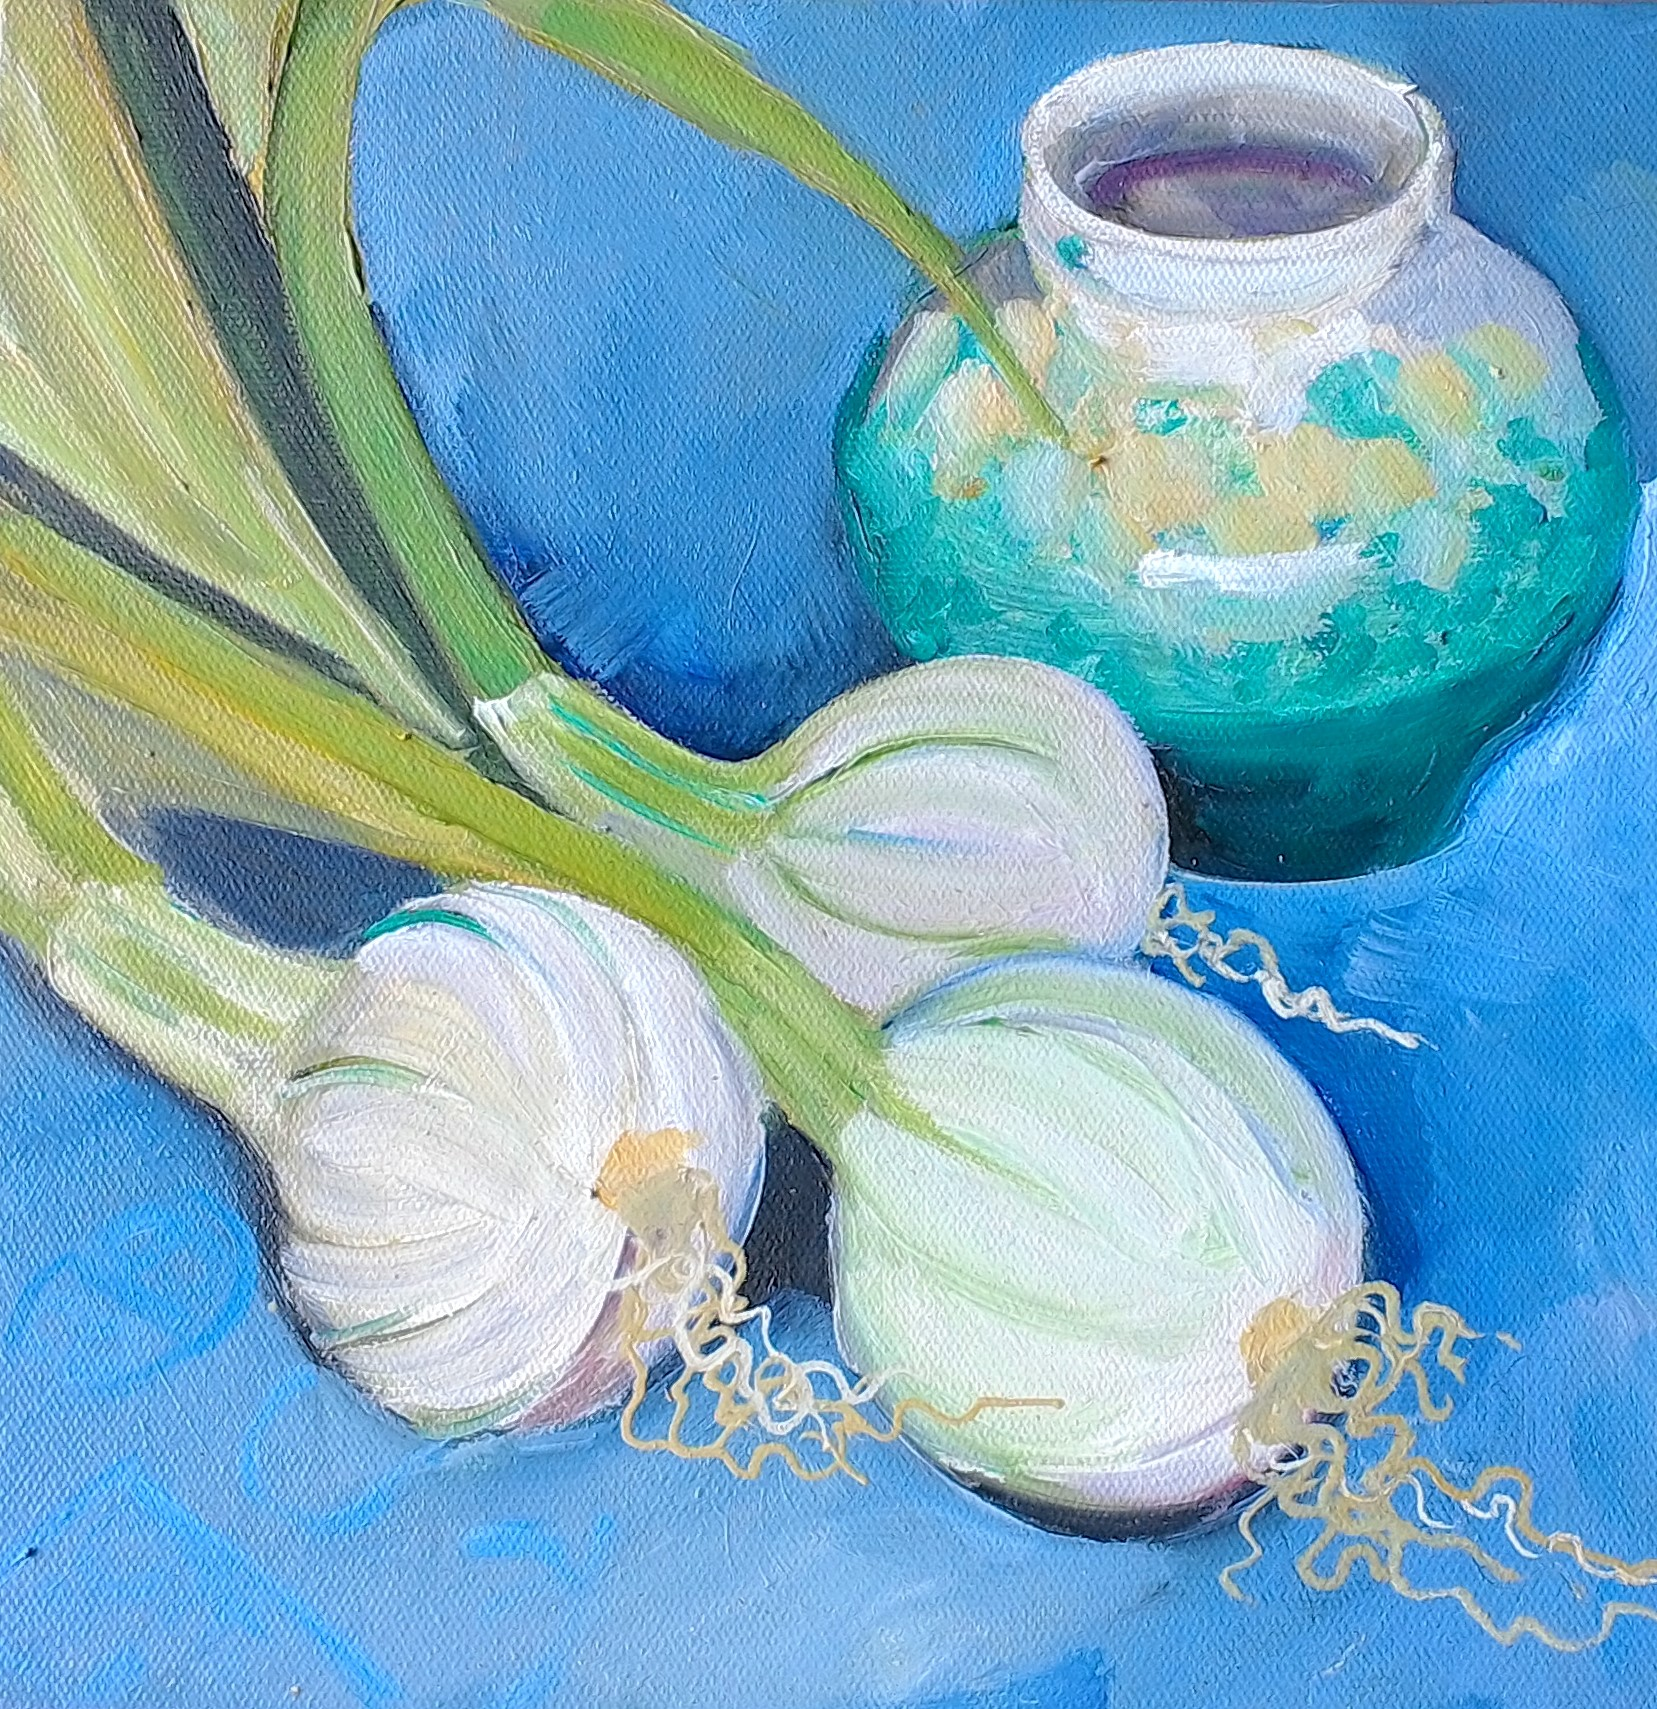 Spring Onions (oil on canvas 25x25cm) $300